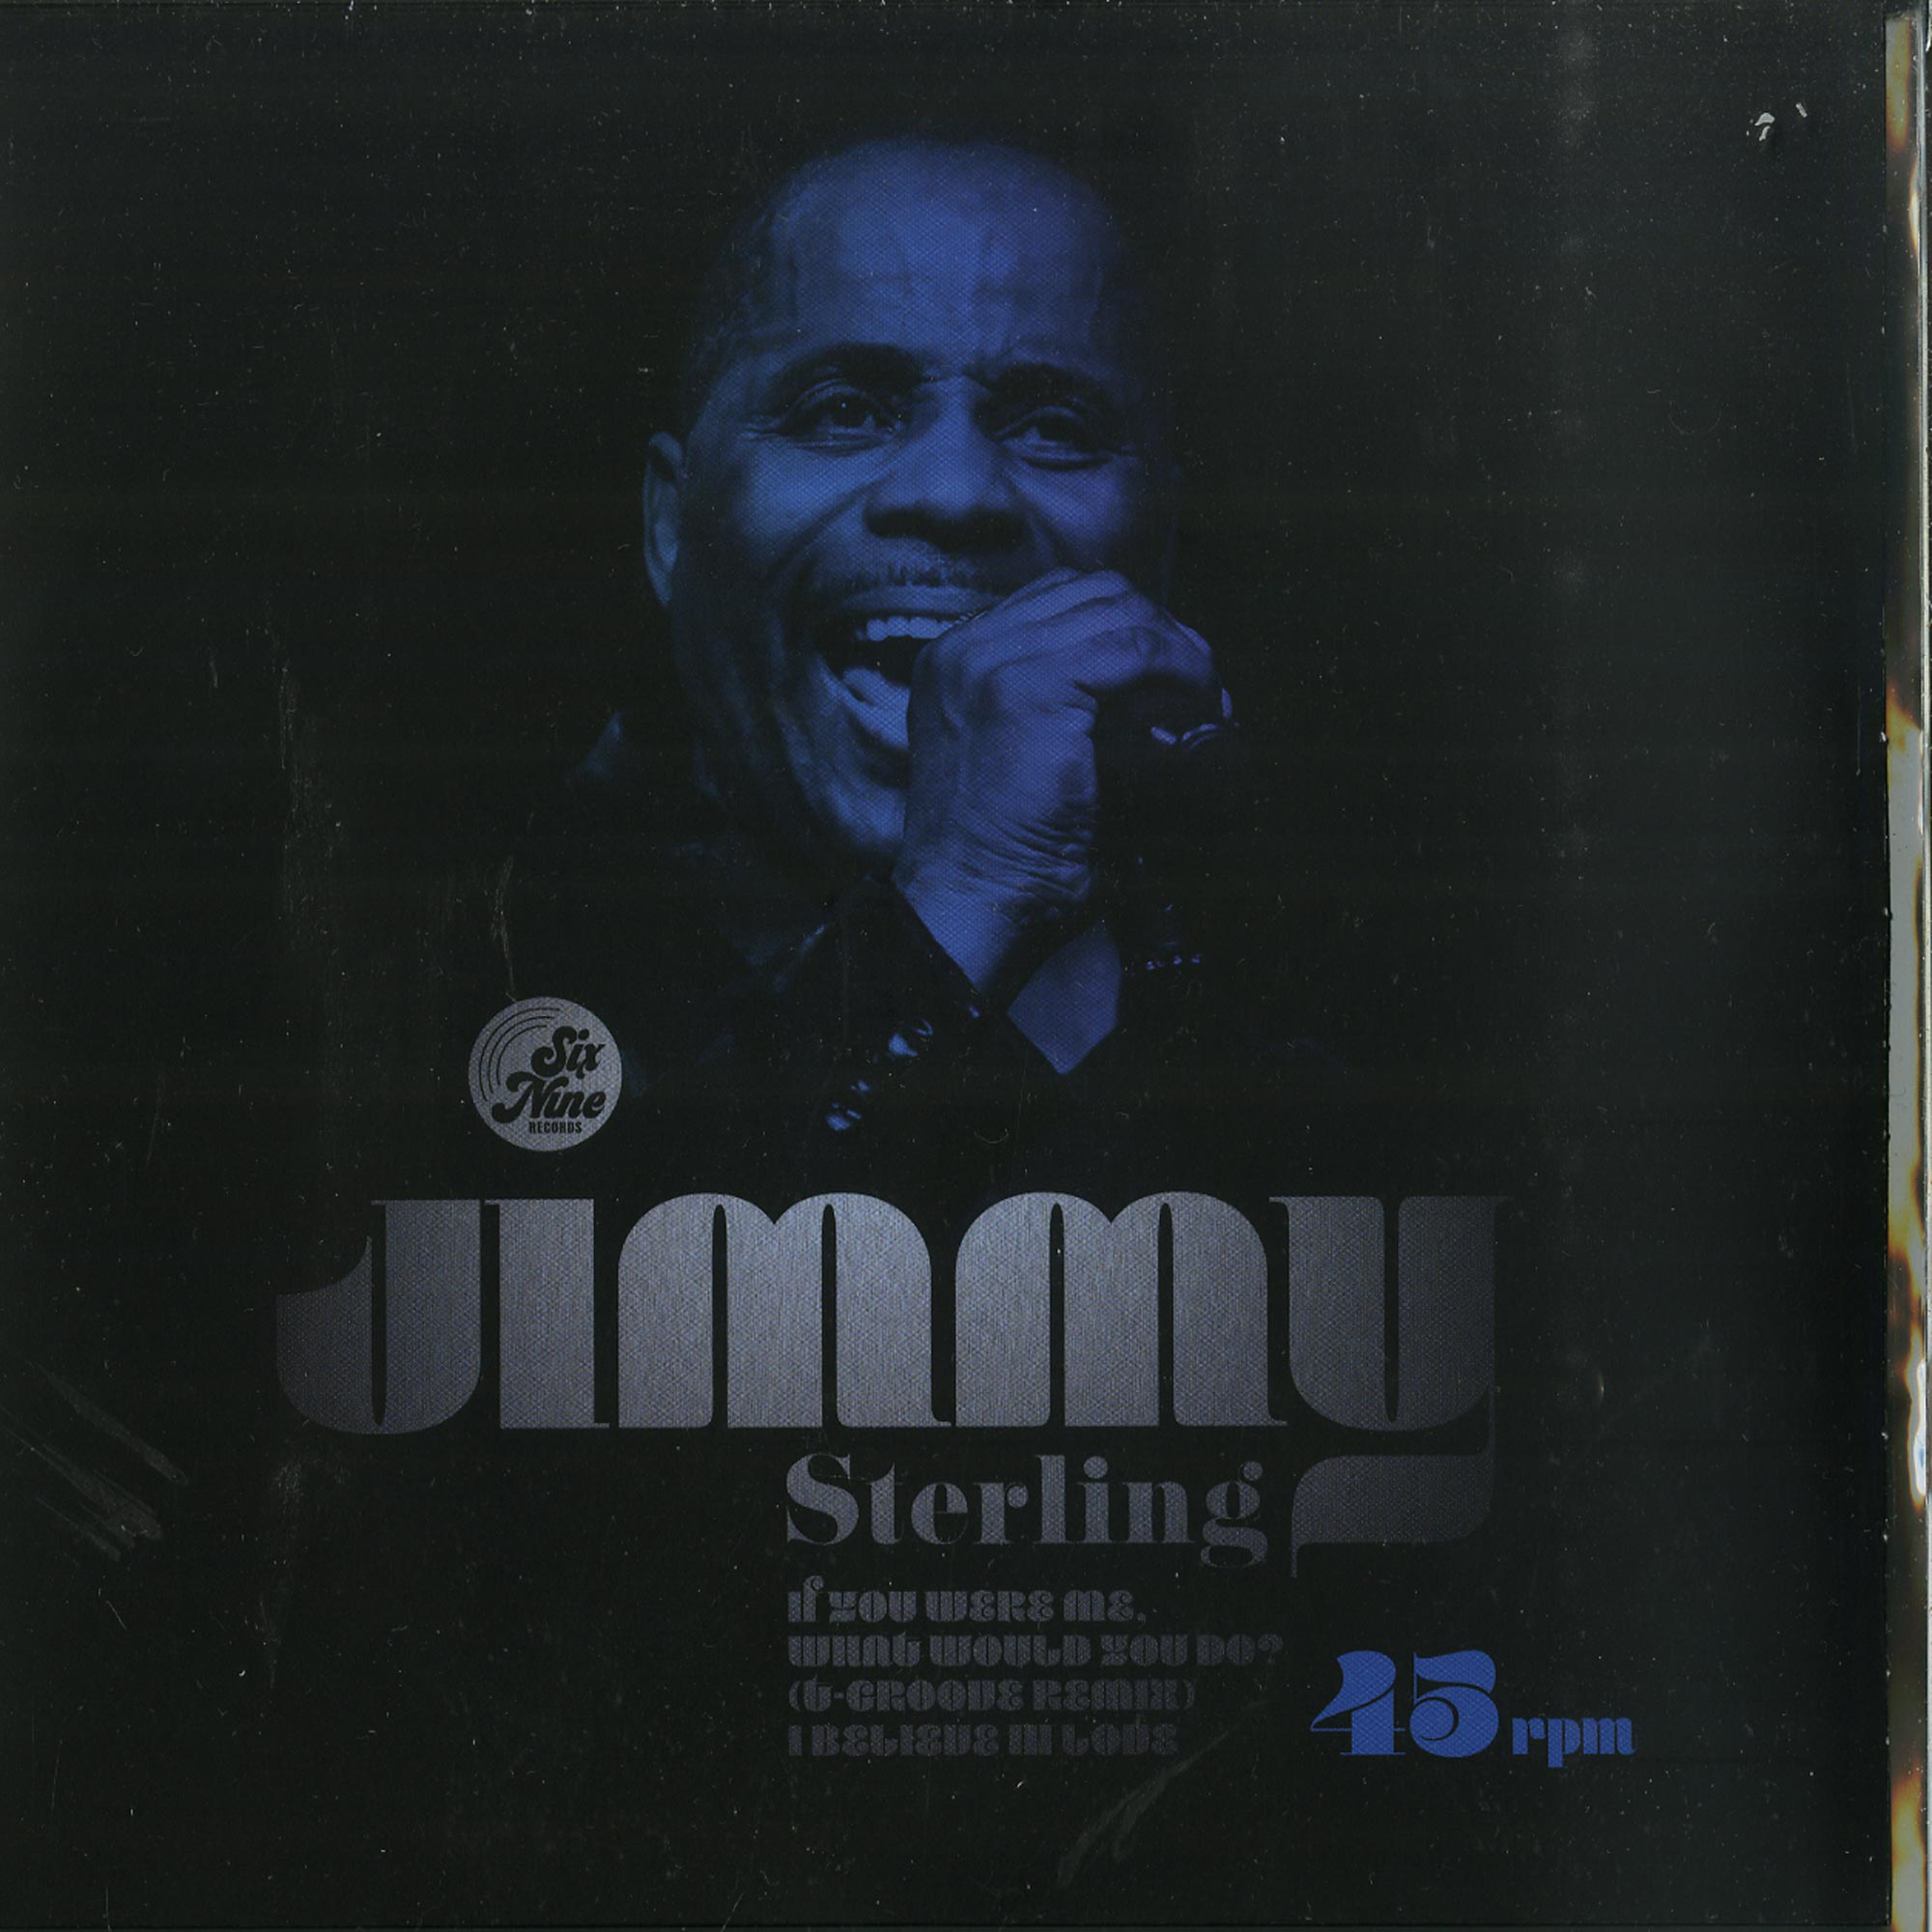 Jimmy Sterling - IF YOU WERE ME / I BELIEVE IN LOVE